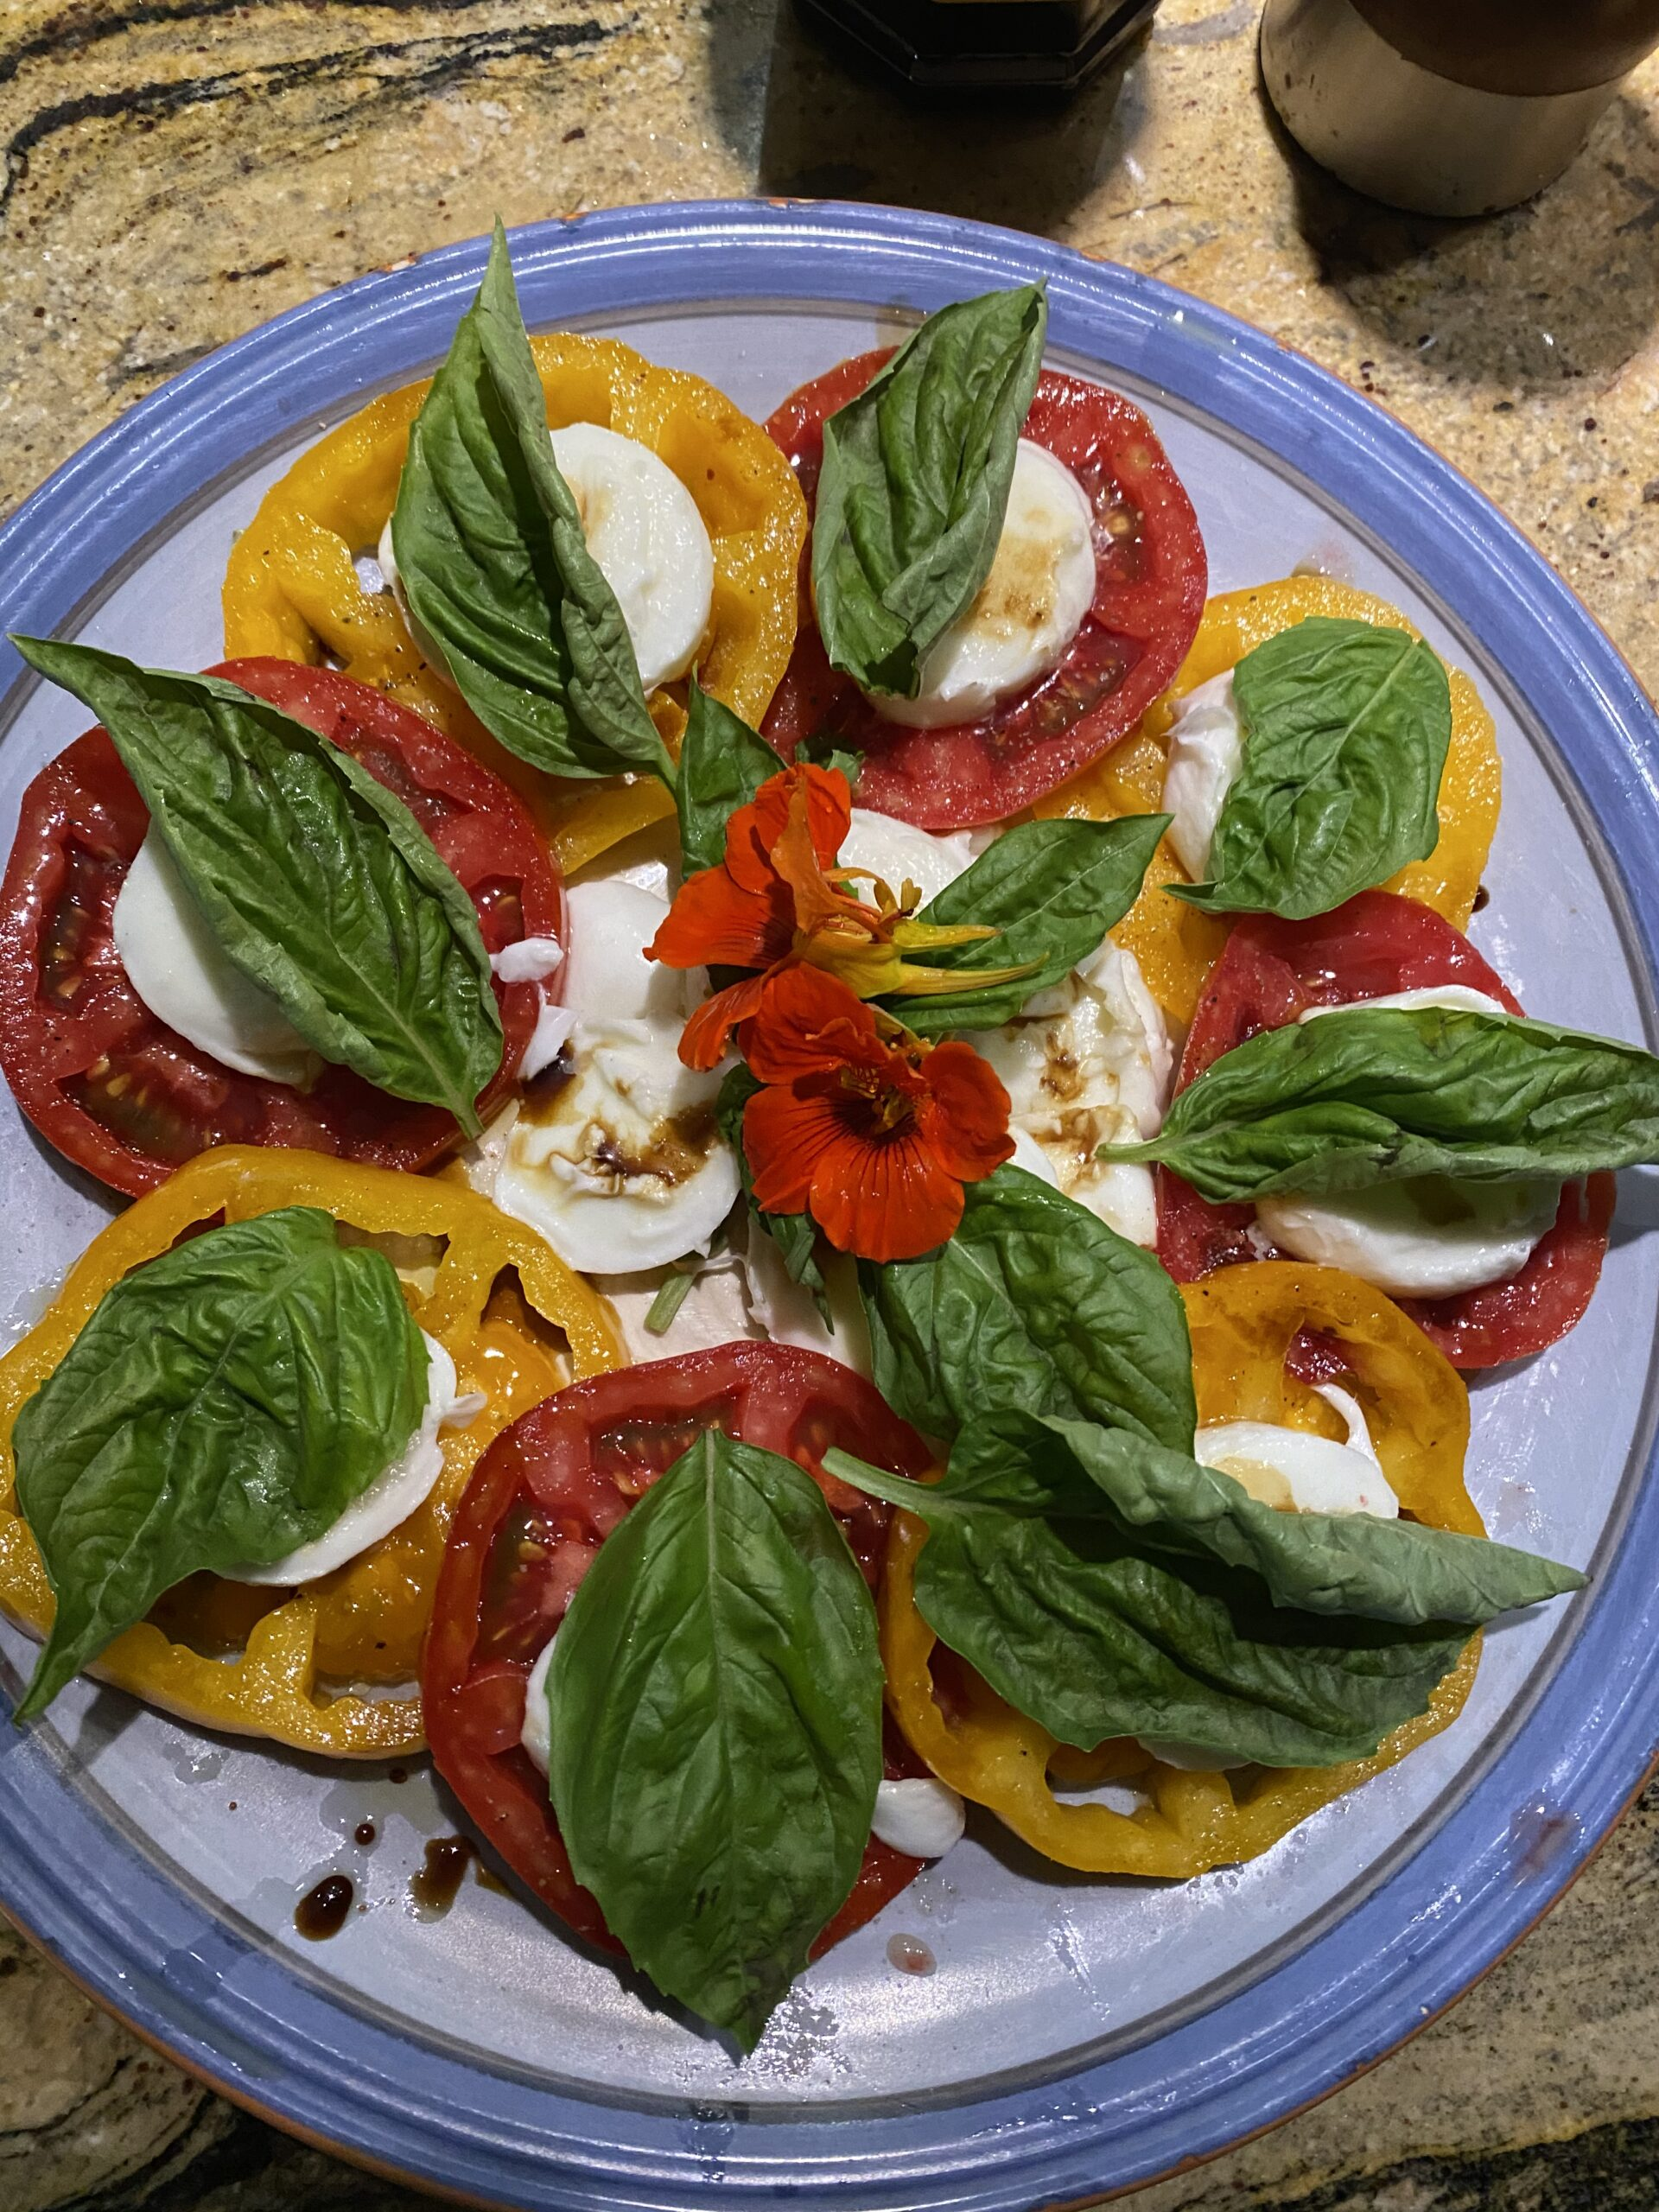 Plate of tomatoes caprese